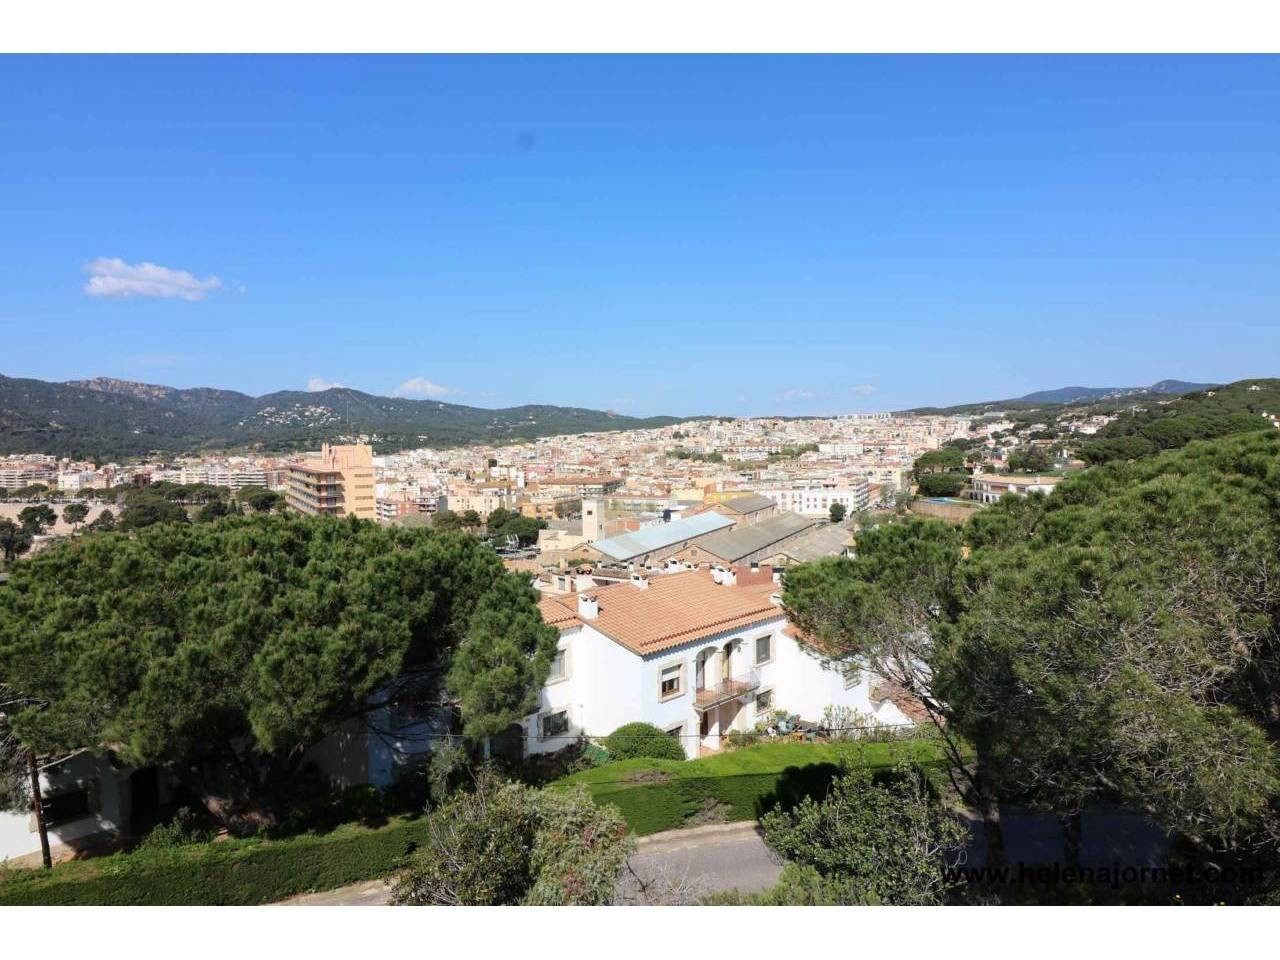 Large land lot with wonderful views and in a very good emplacement